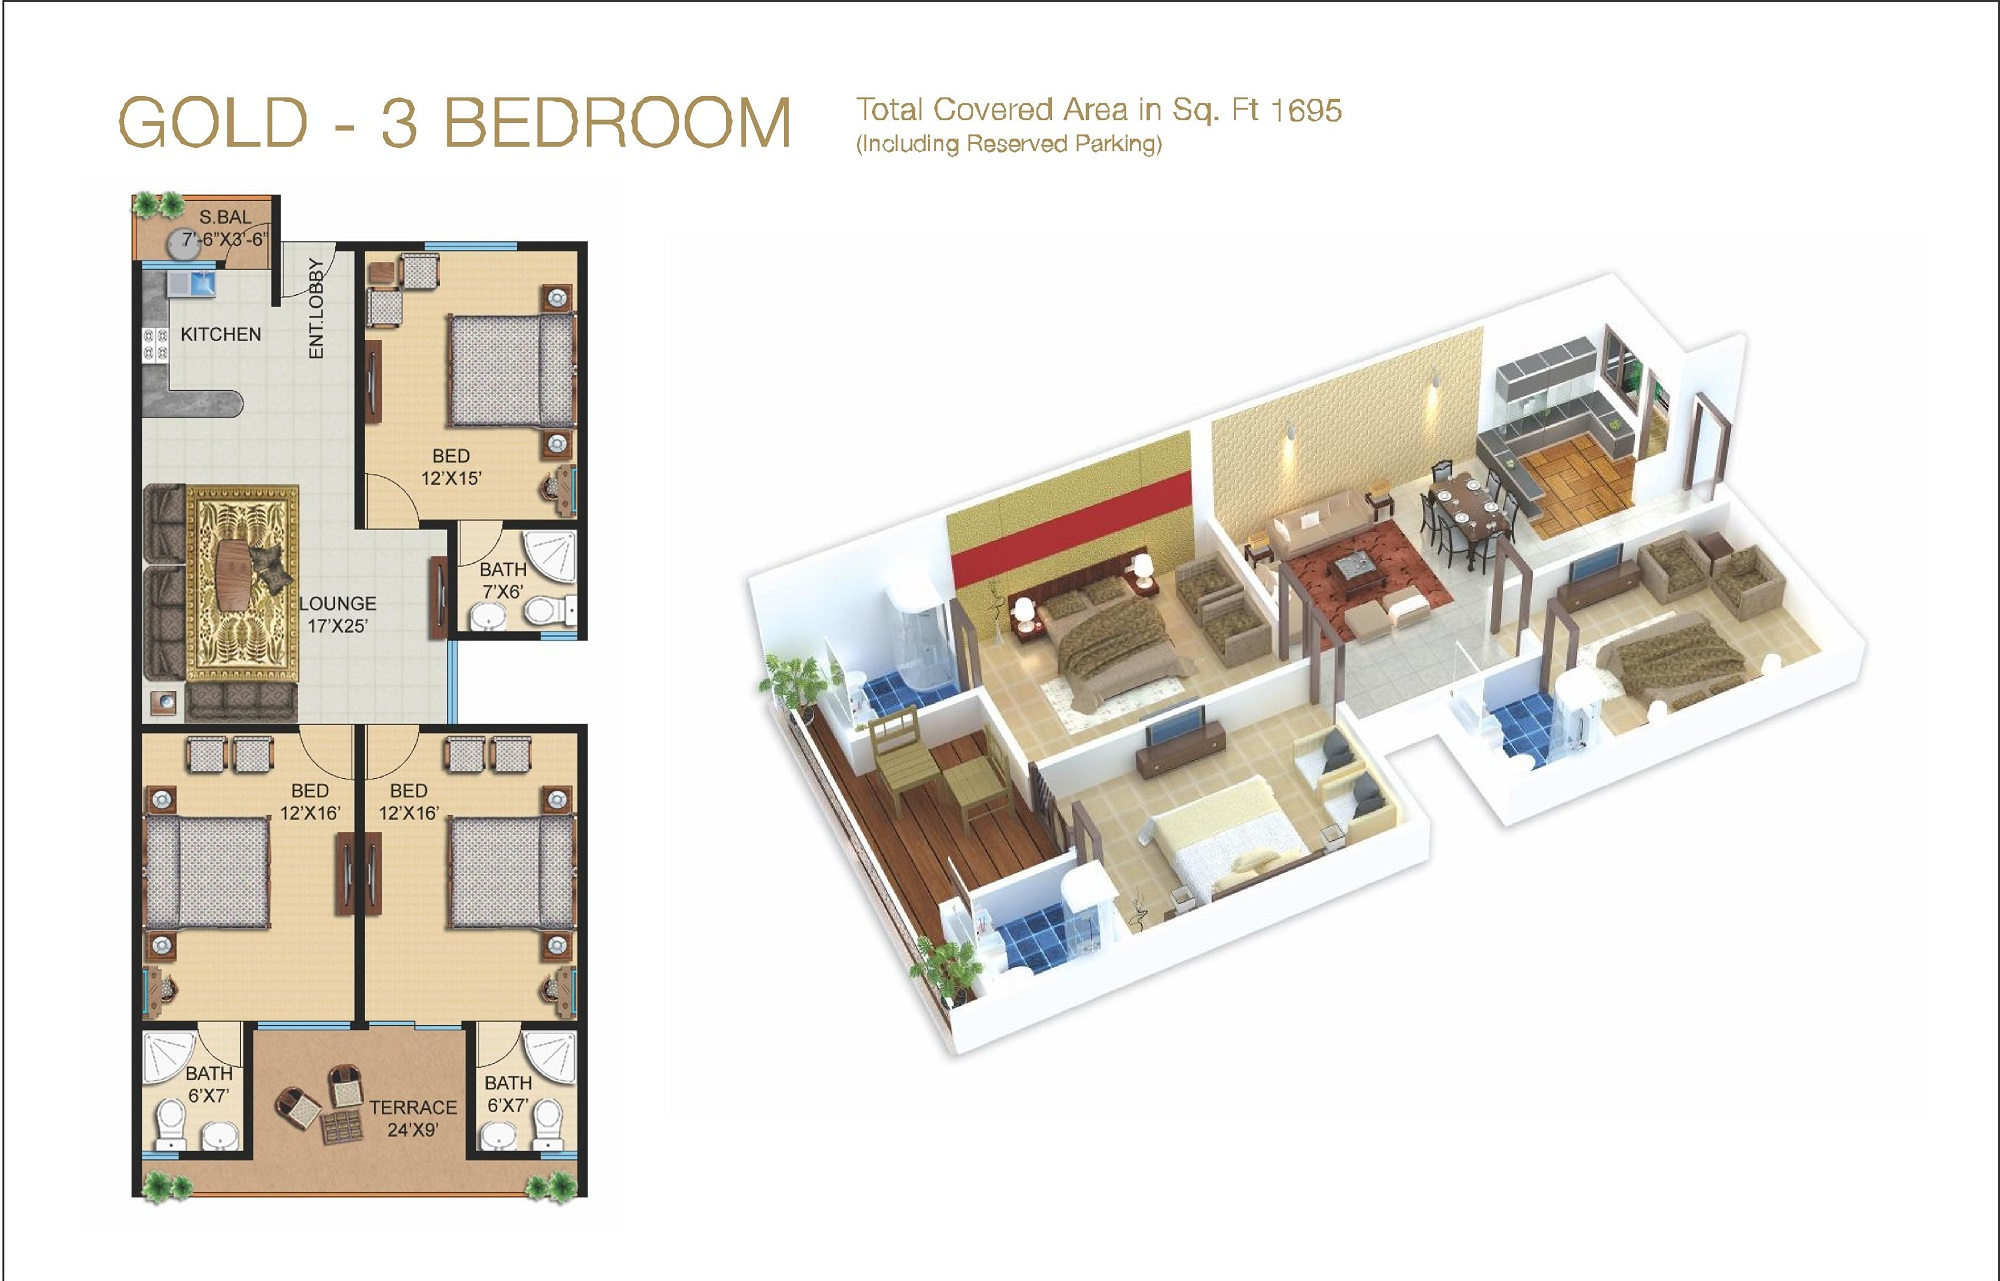 Galleria Gold 3 Bedroom Layout Plan